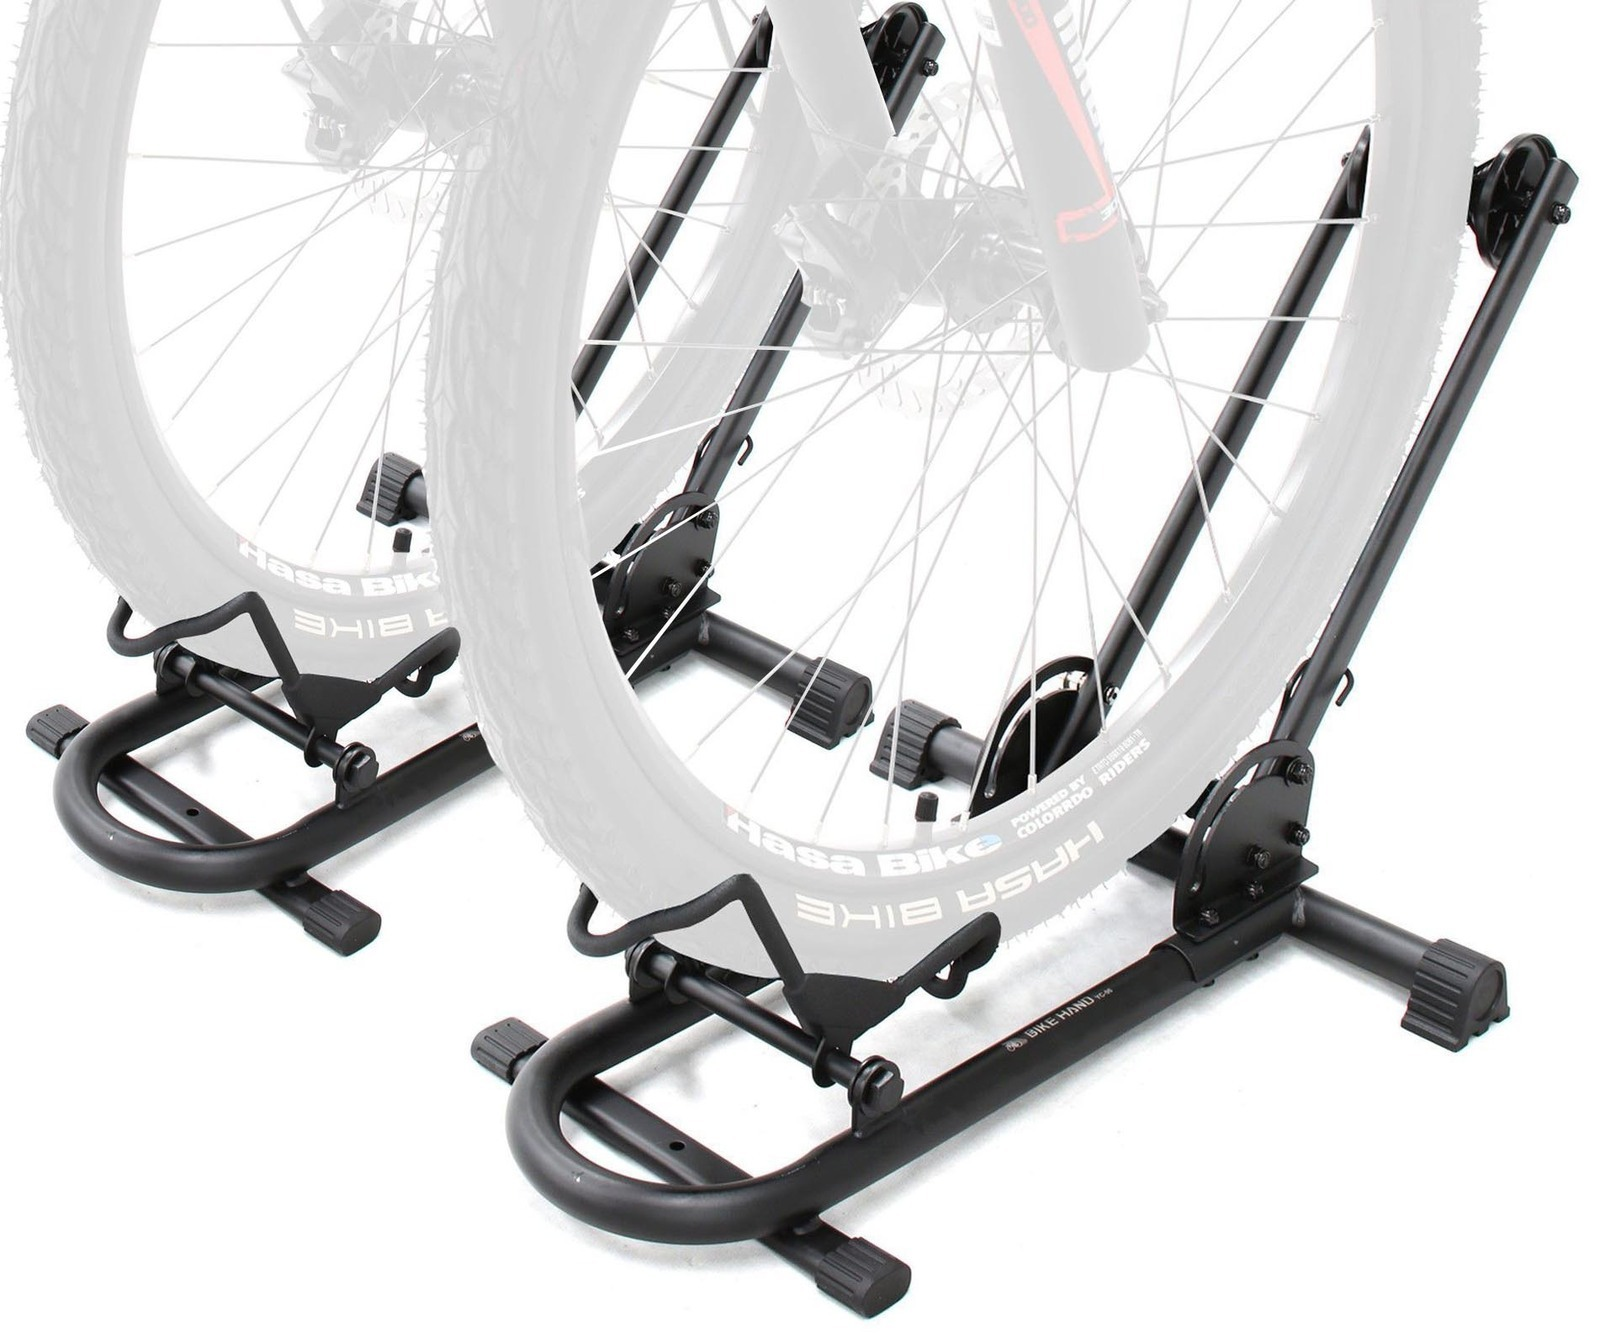 BIKEHAND Bike Floor Parking Rack Storage Stand Bicycle Pack of 2